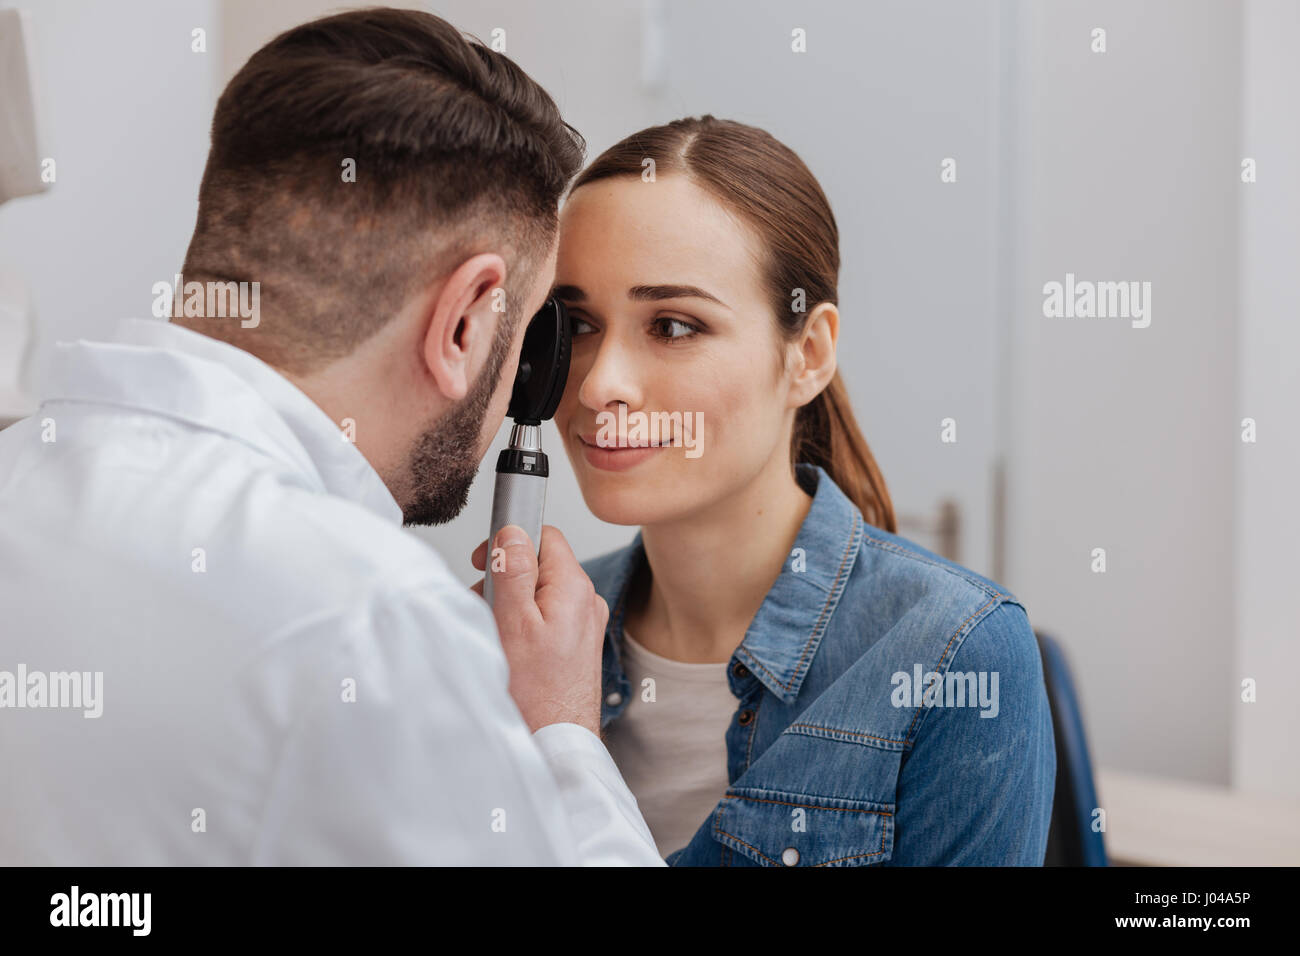 Pleasant nice doctor using ophthalmoscope - Stock Image